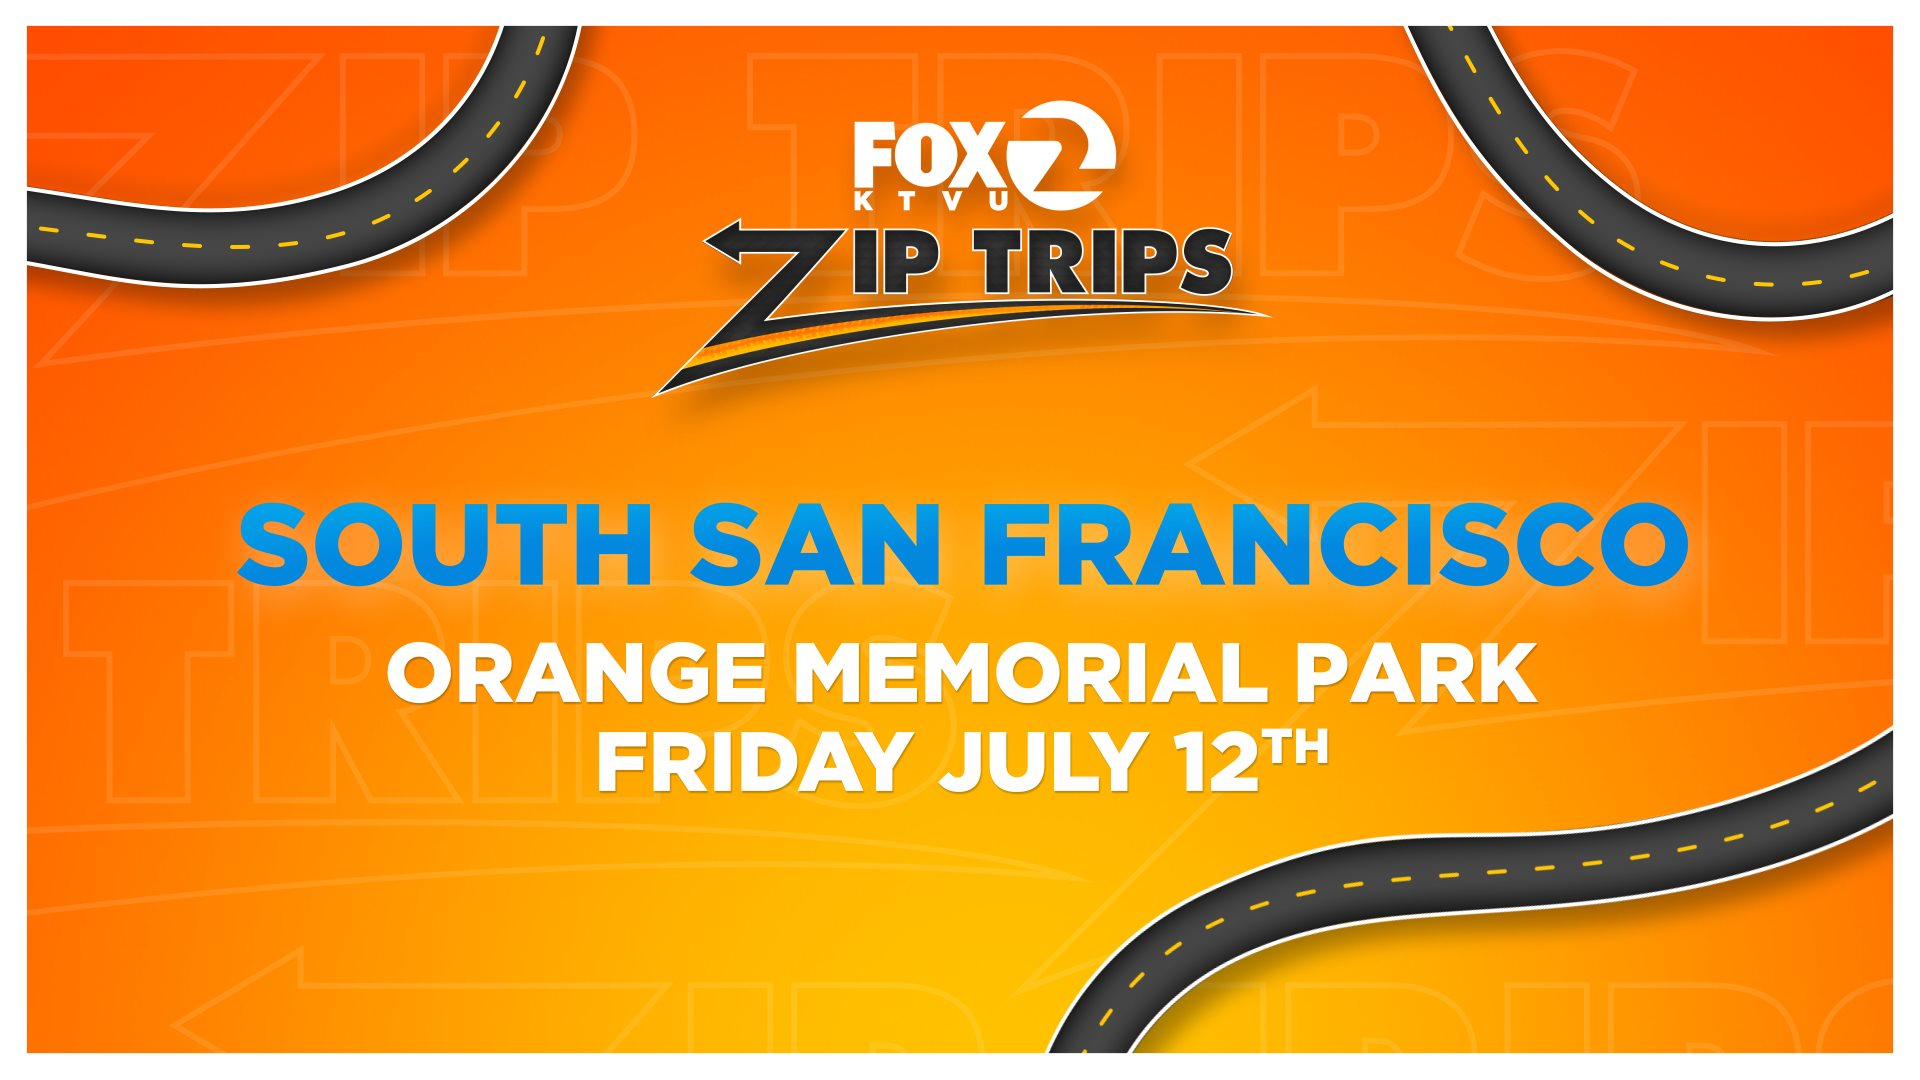 KTVU-TV (Fox 2) is Broadcasting LIVE in South City TOMORROW